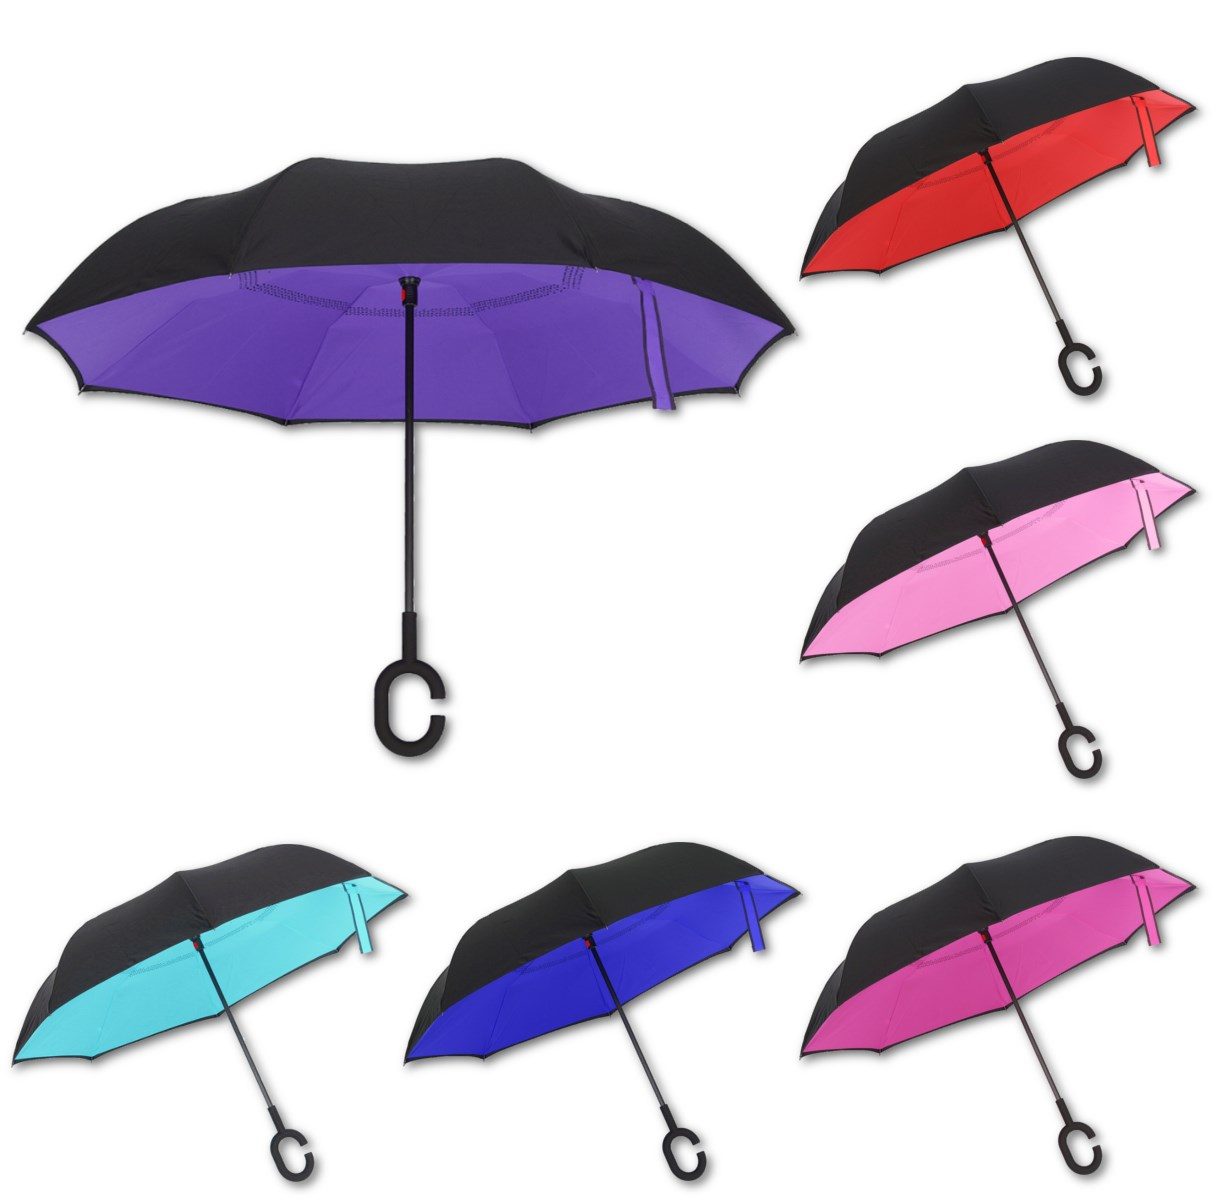 Invert color jpg online - Hand Free Reverse Umbrella Self Stand C Hook Windproof Double Layer Inverted Umbrella Six